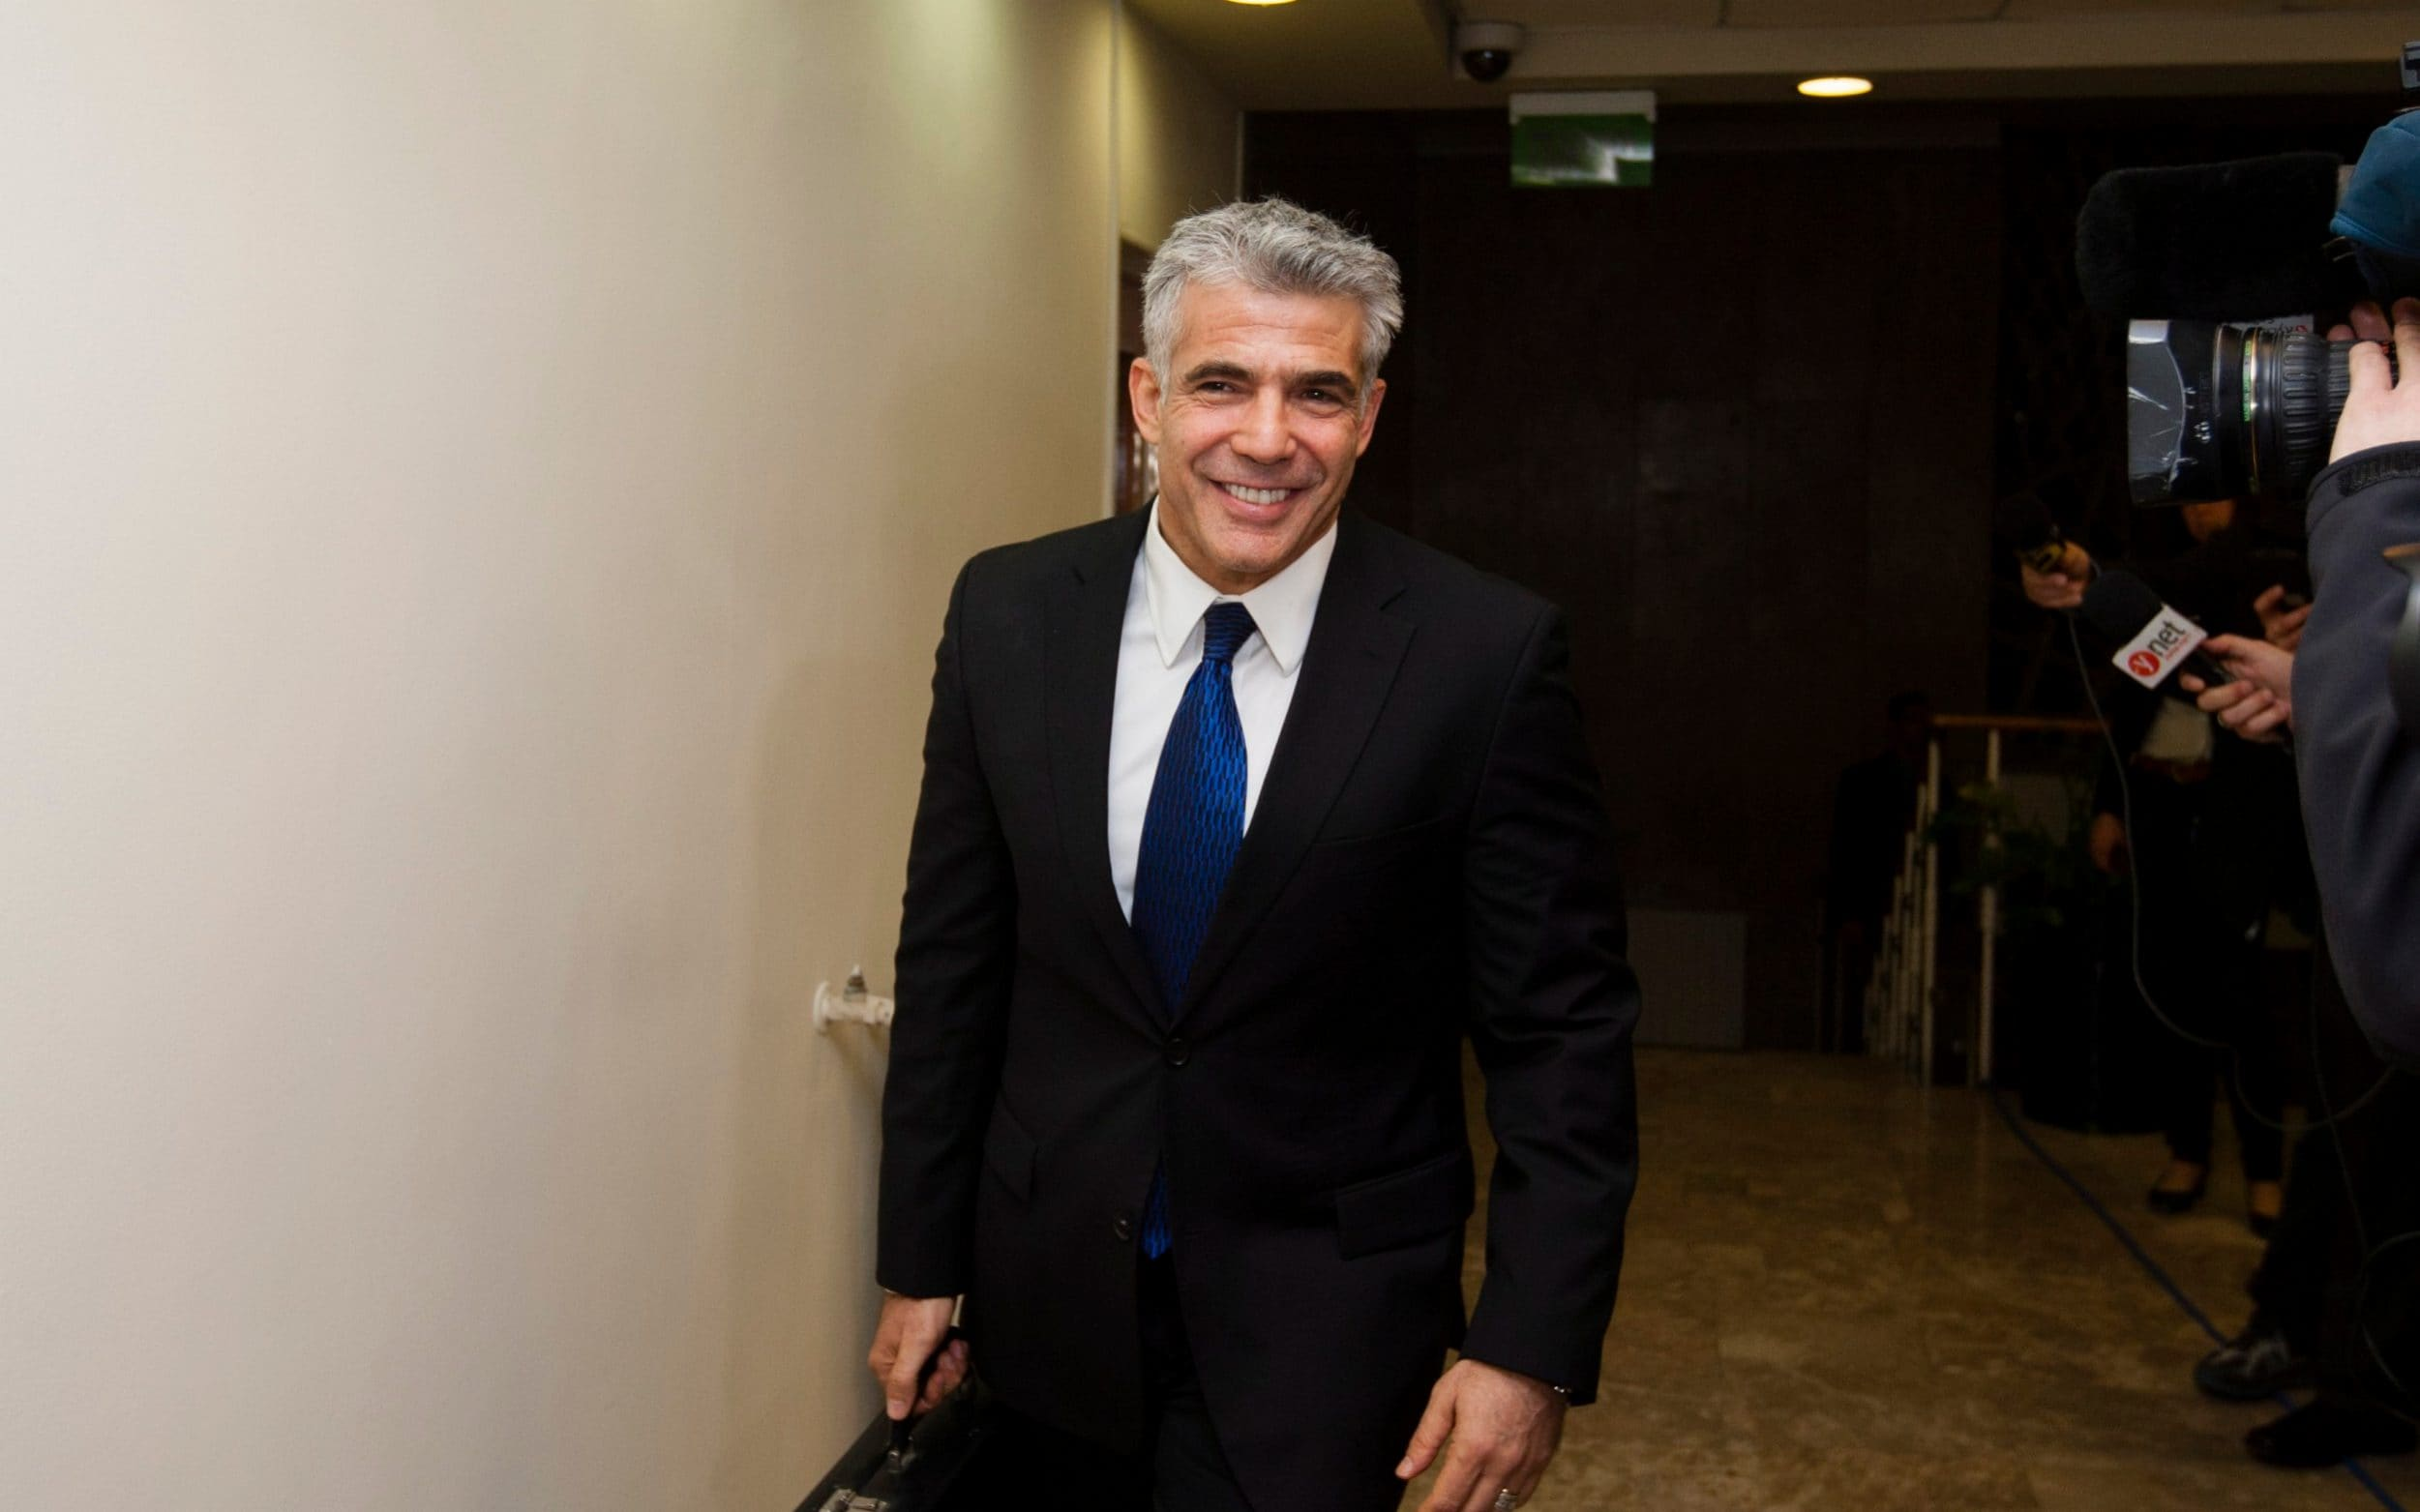 Yair Lapid, the leader of the centrist Yesh Atid party, is a possible replacement for Mr Netanyahu if there are elections